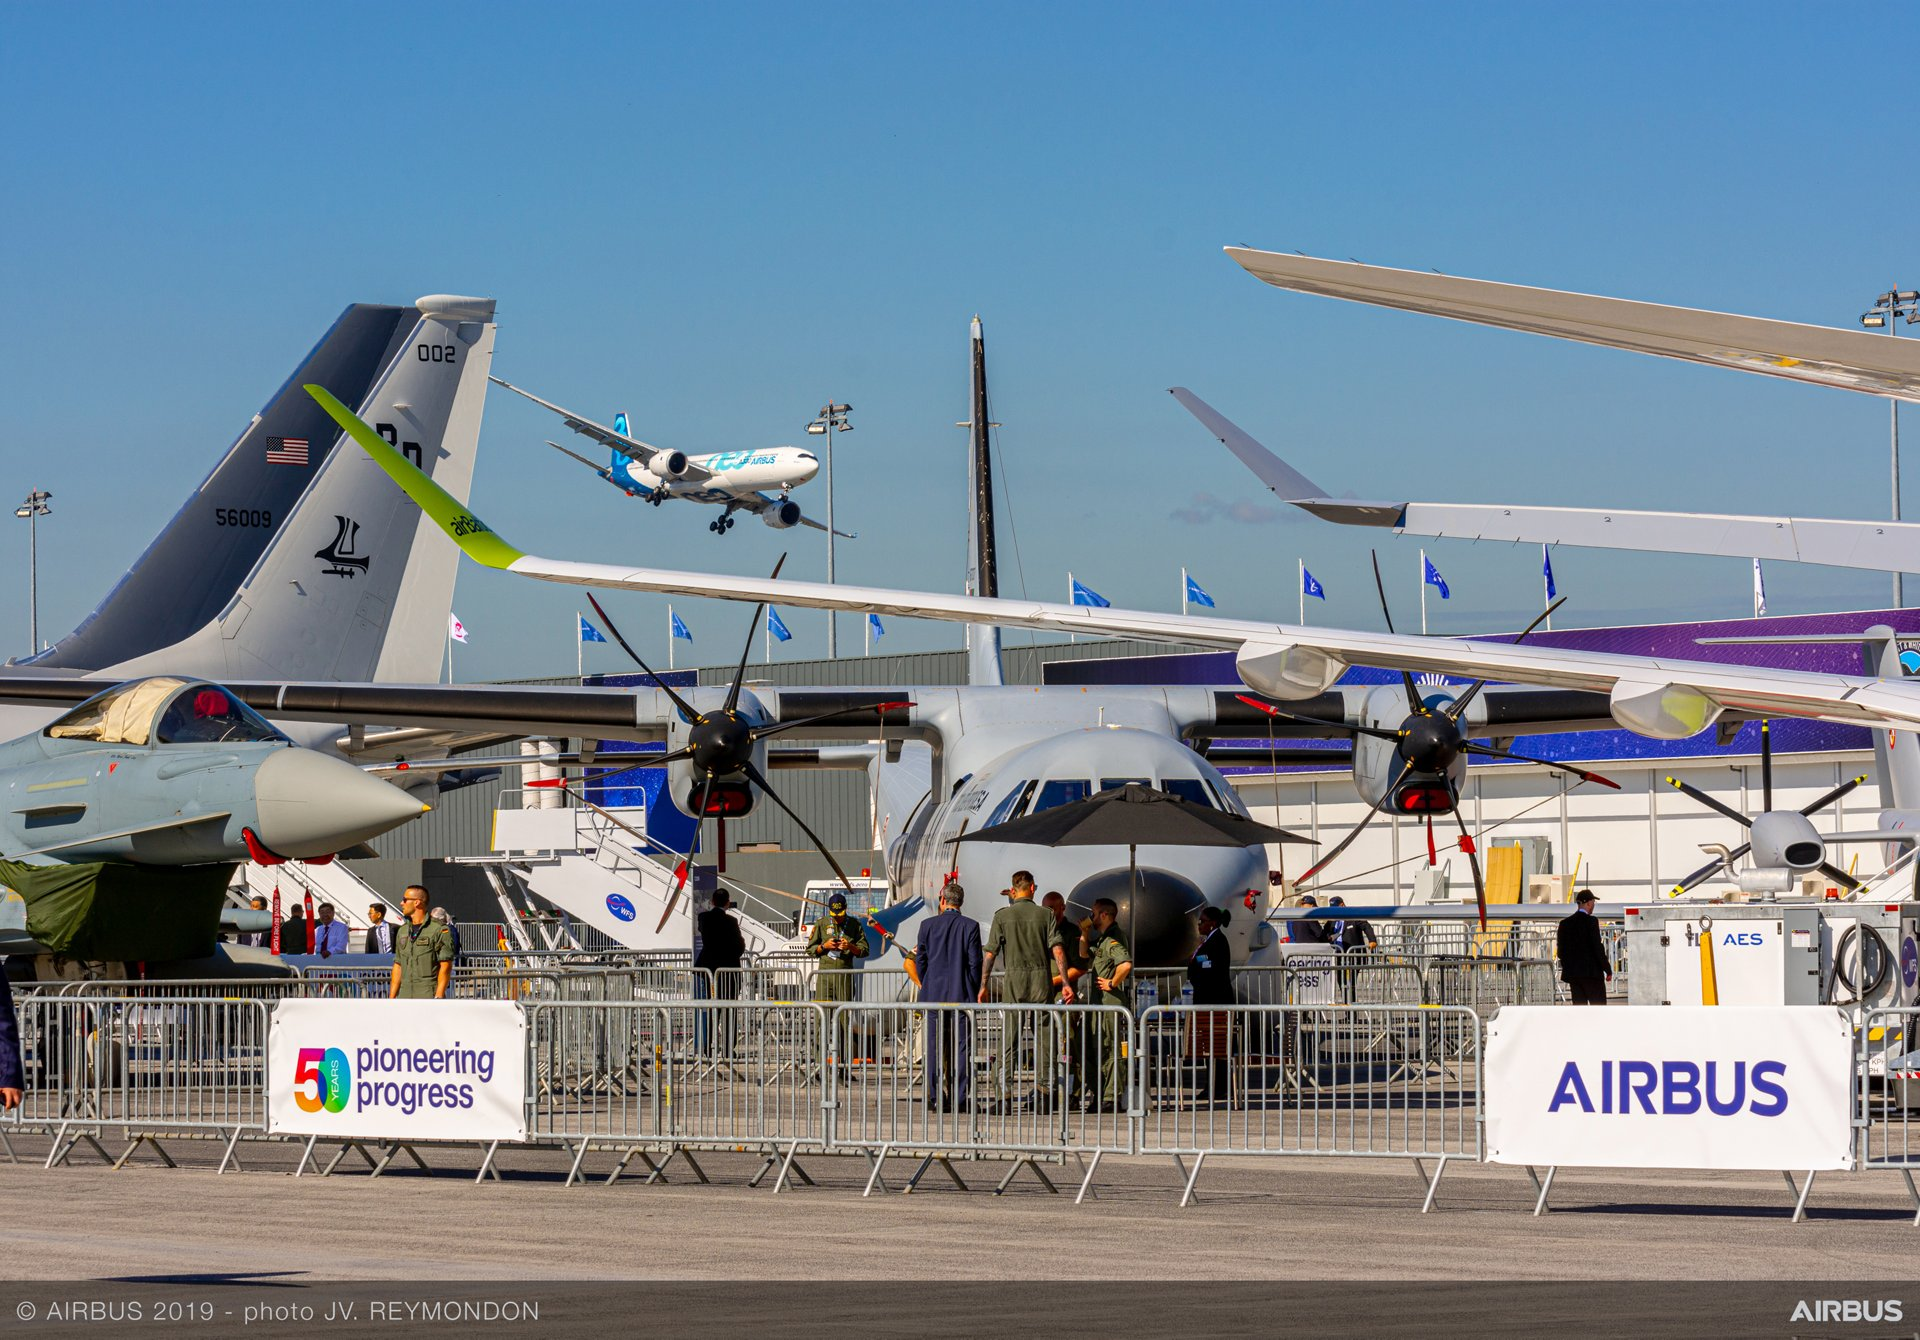 PAS2019 A330-900 Flying Display - Day 1  Airbus A330neo wide-body jetliner demonstrates its capabilities during the flight display at the 2019 Paris Air Show